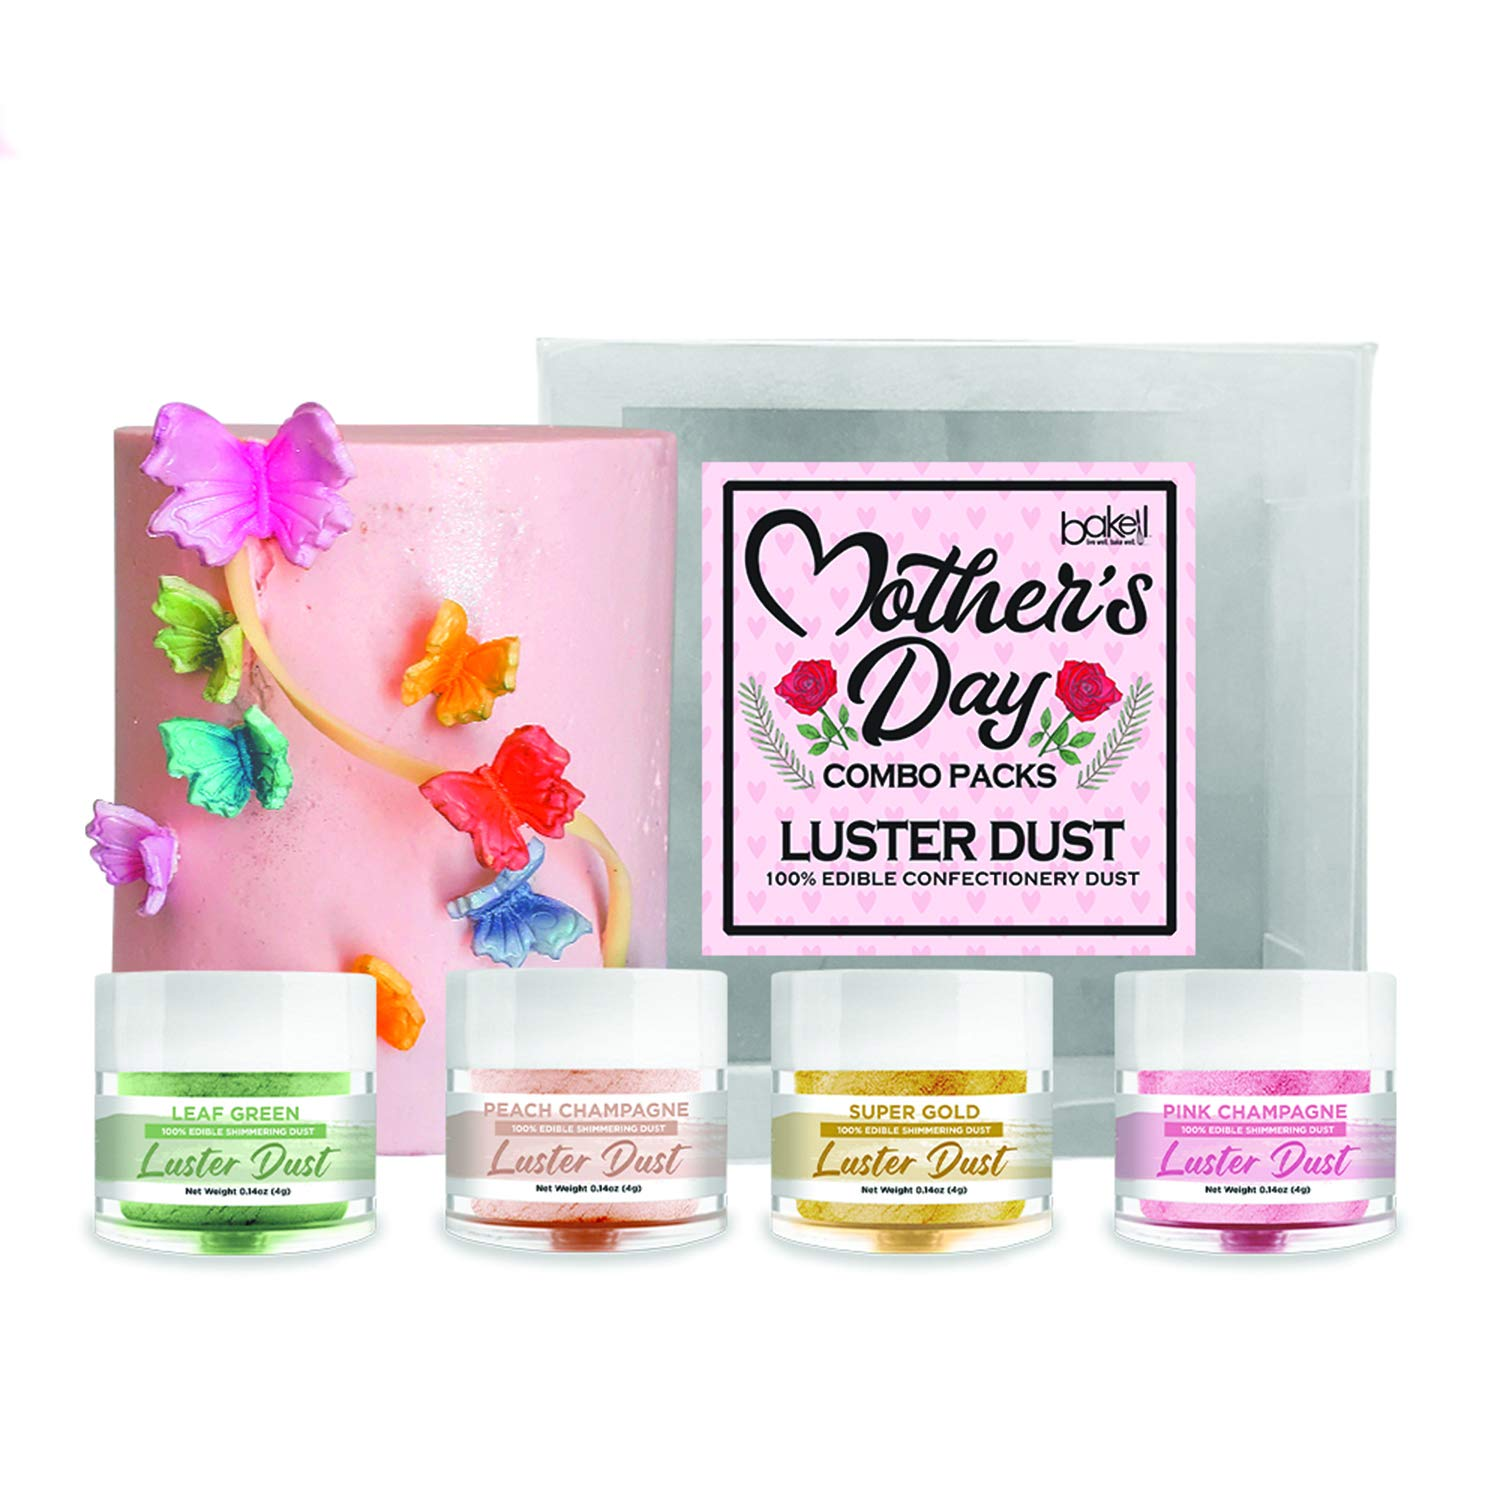 BAKELL Edible 67% OFF of fixed price Luster Dust Miami Mall 4 PC Day Mother's Combo Gram Pack A